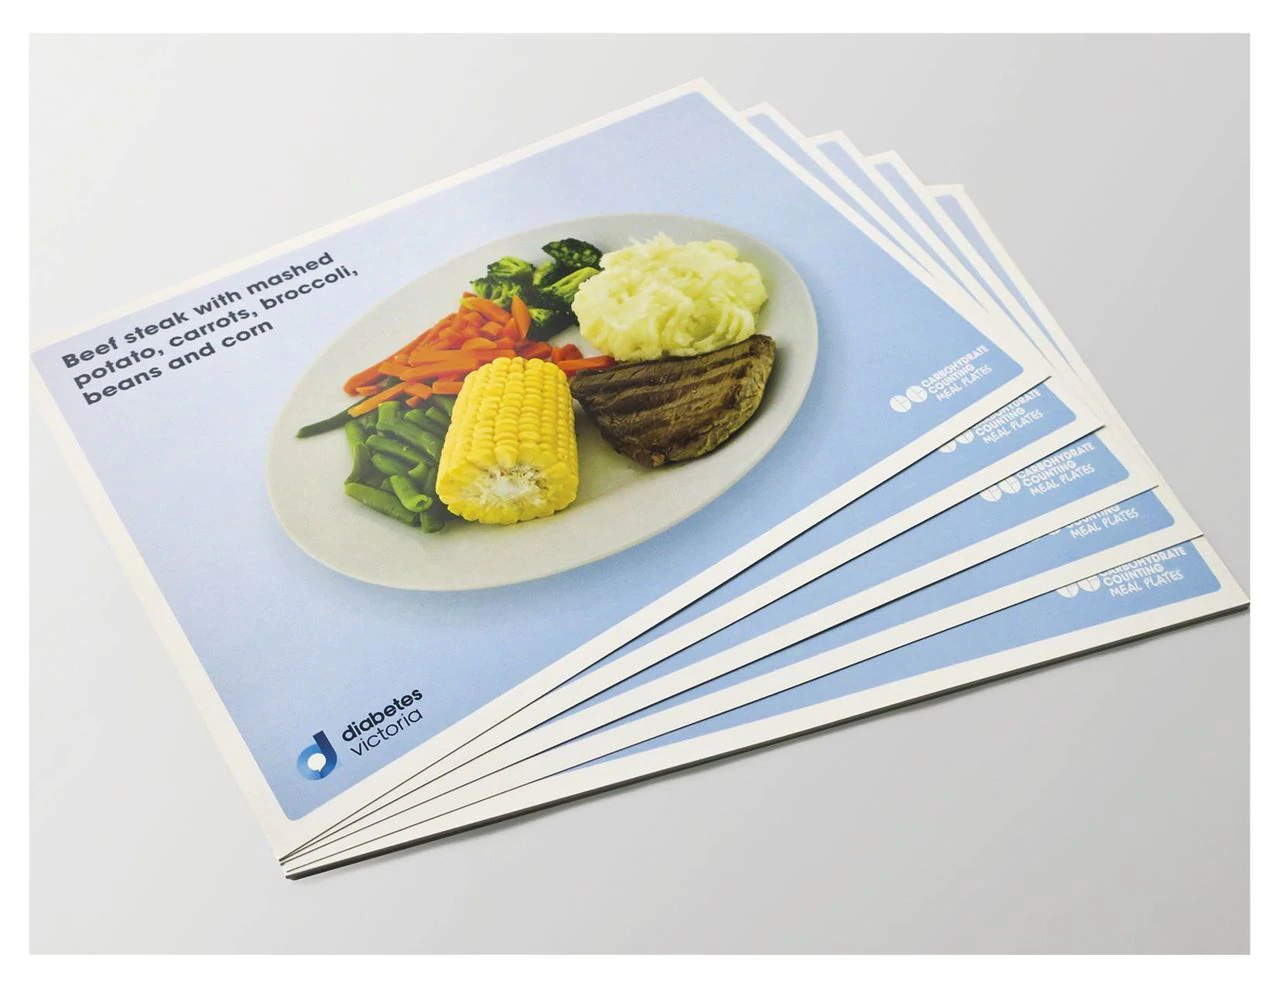 Carb Counting Meal Plates - front